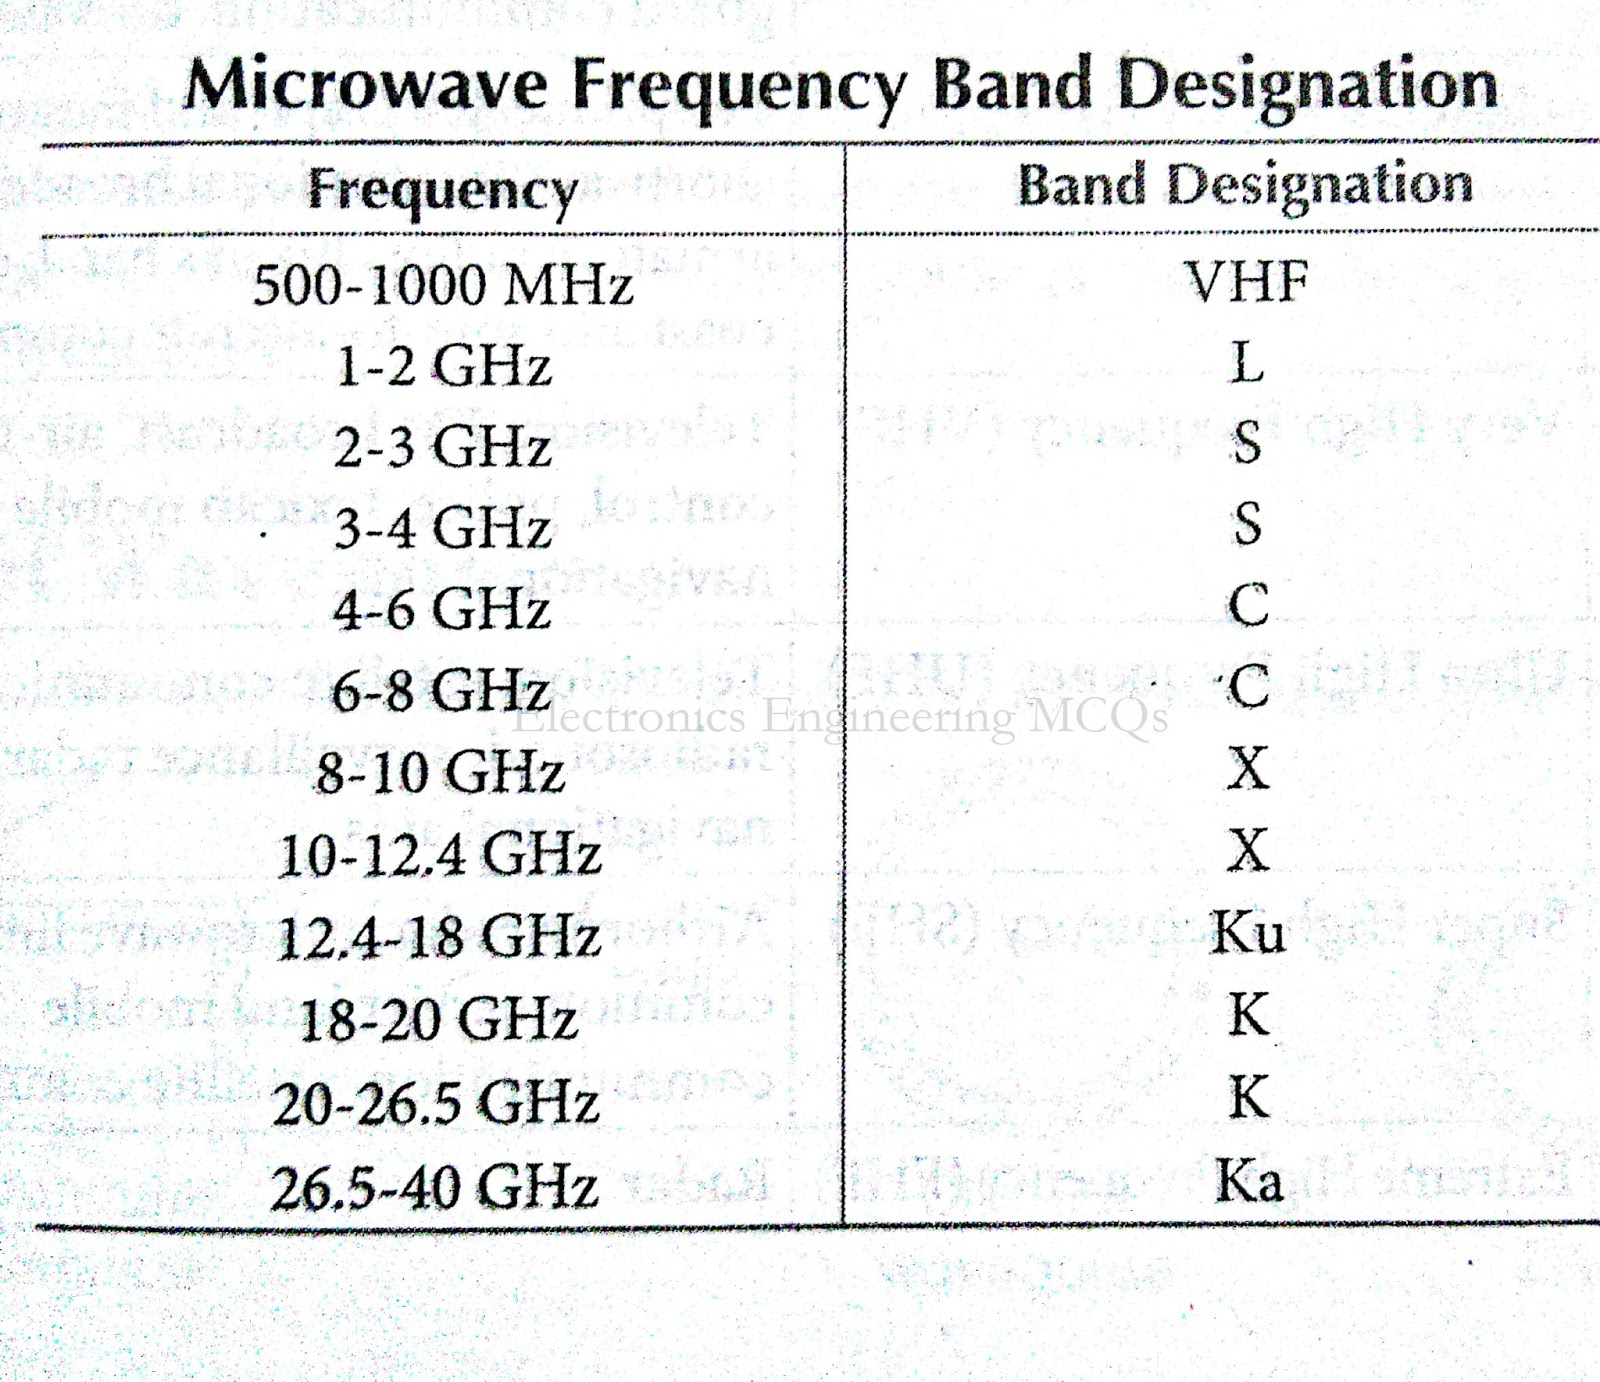 itu frequency designation Frequency band designations military radar bands military radar band nomenclature, l, s, c, x, ku, and k bands originated during world war ii as a secret code so scientists and engineers could talk about frequencies without divulging them.